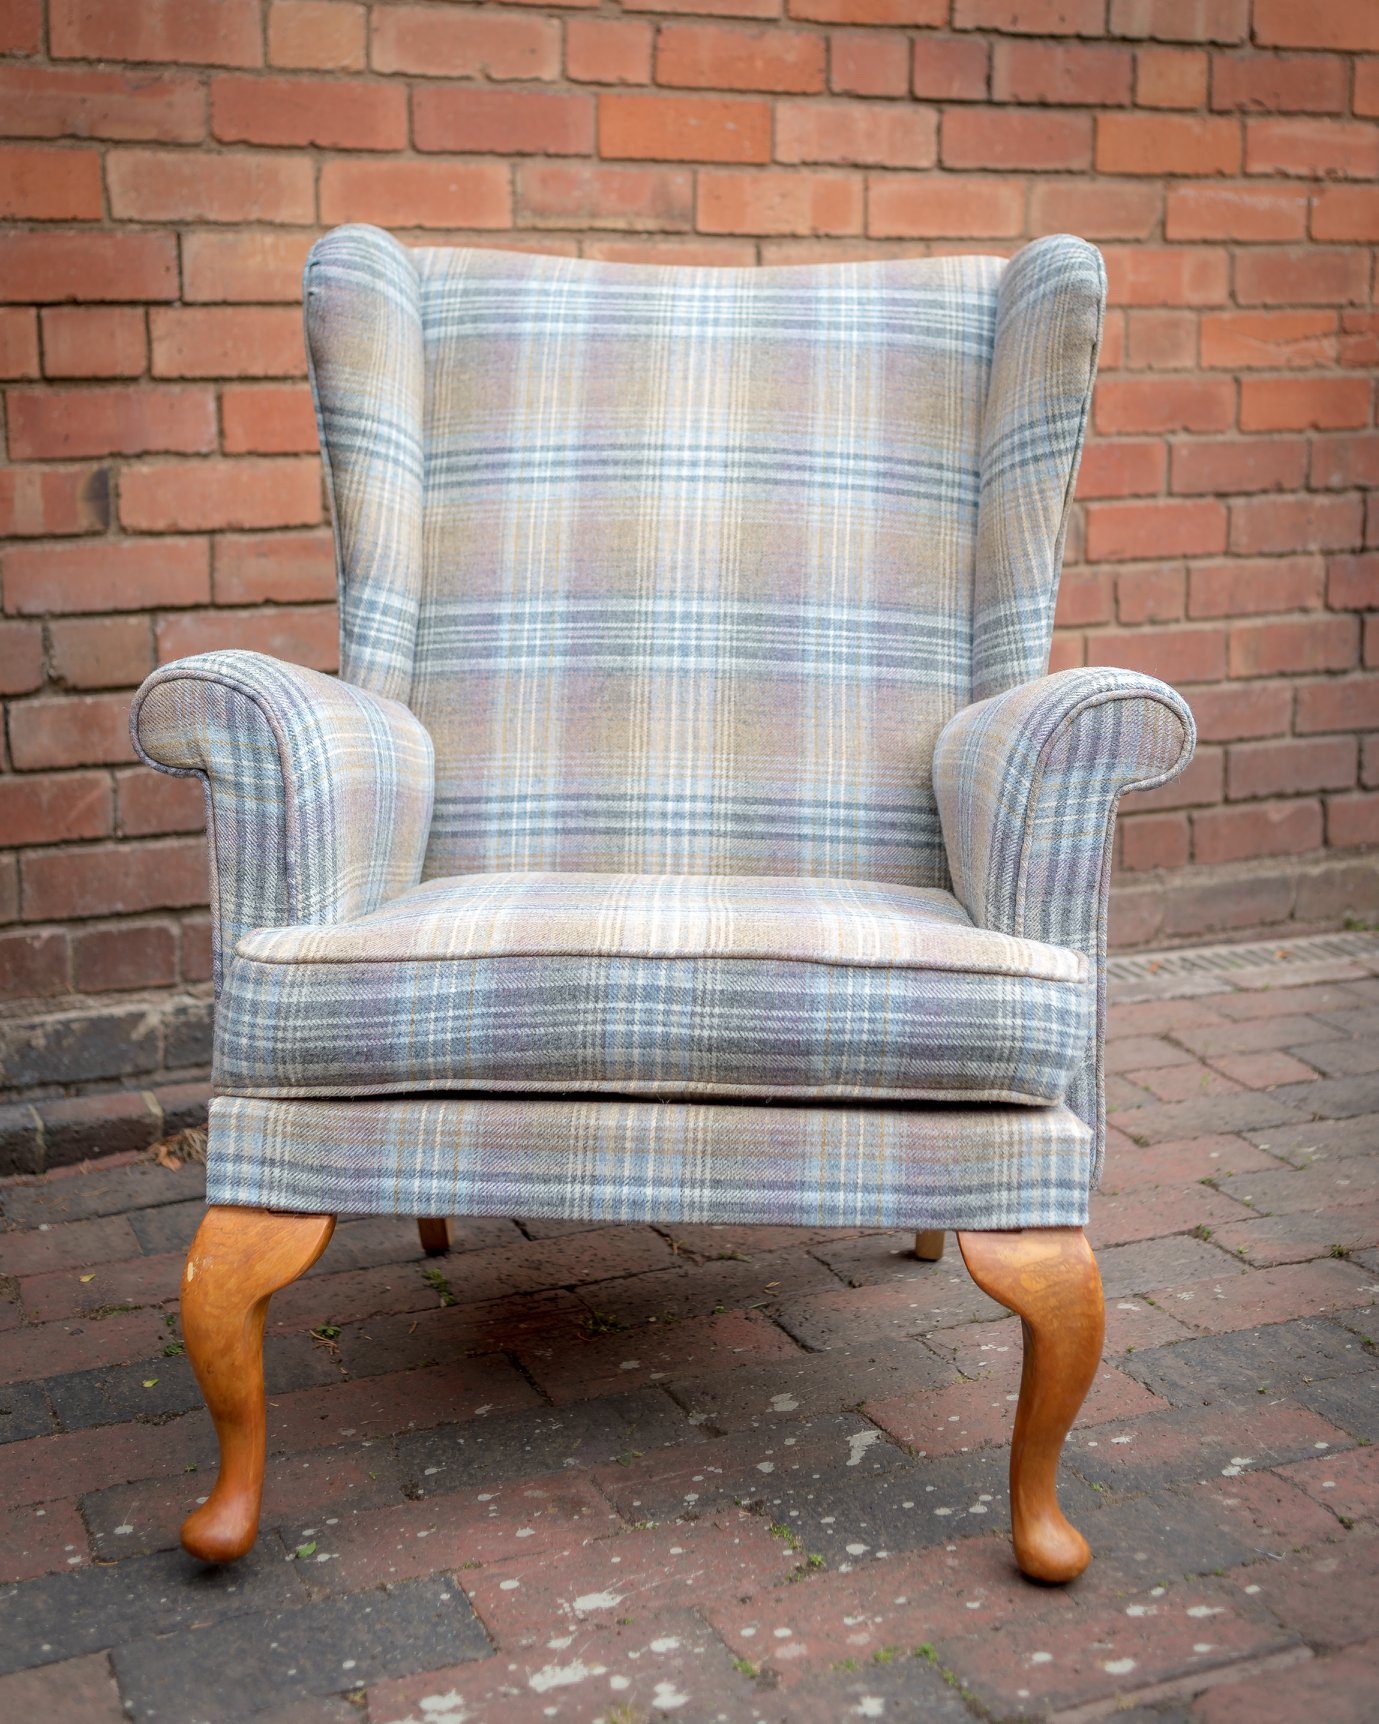 Katie Harris - Catherine reupholstered our armchair recently and did a fantastic job. The attention to detail is superb and we are so pleased with the finished product - it's absolutely beautiful. Thanks Catherine!!!!